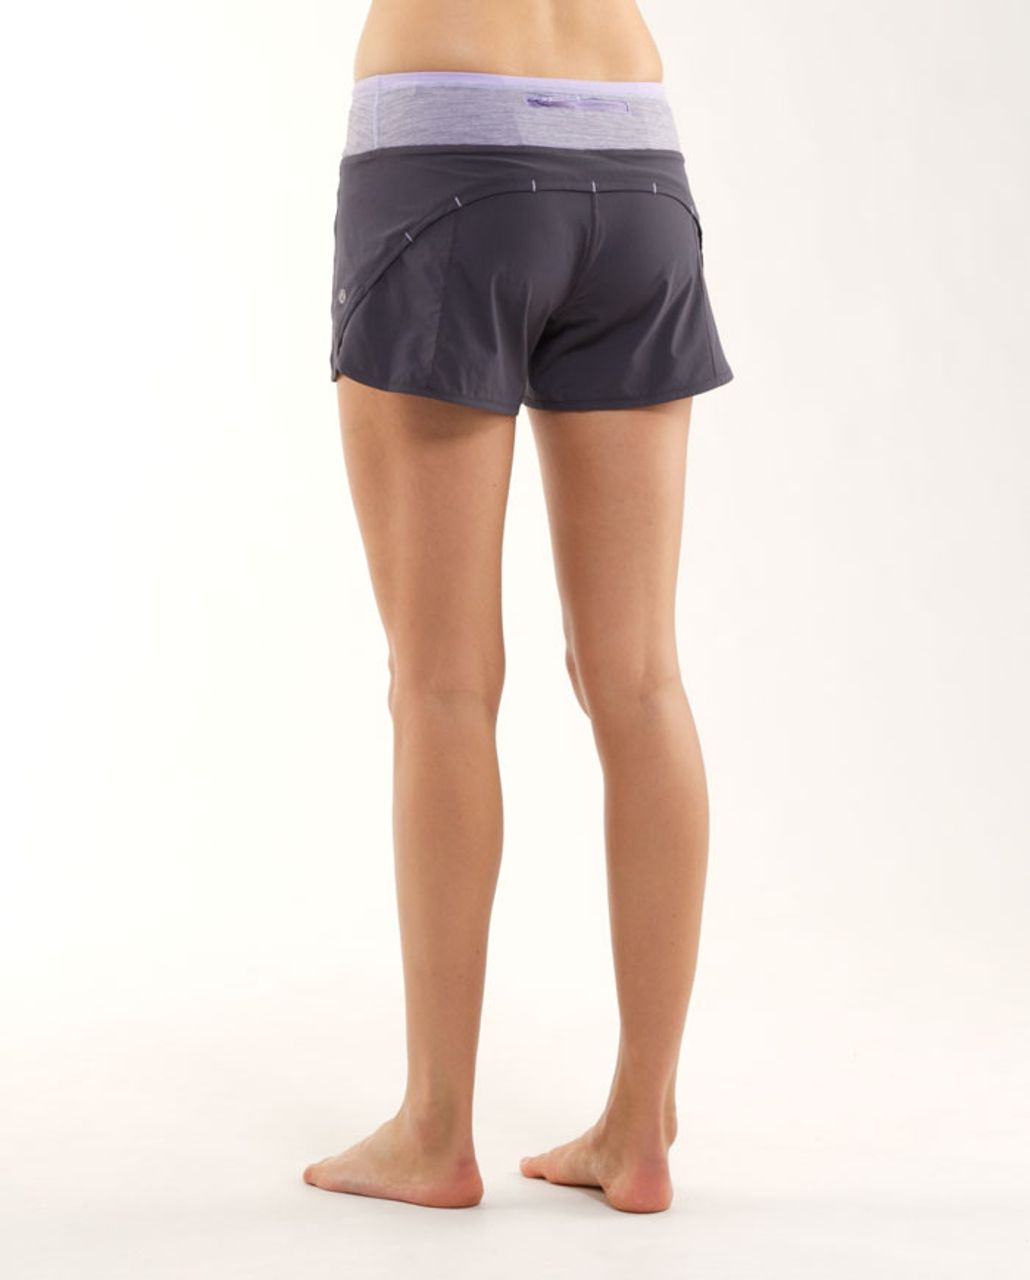 Lululemon Turbo Run Short - Coal /  Lilac Heathered Coal Wee Stripe /  Lilac